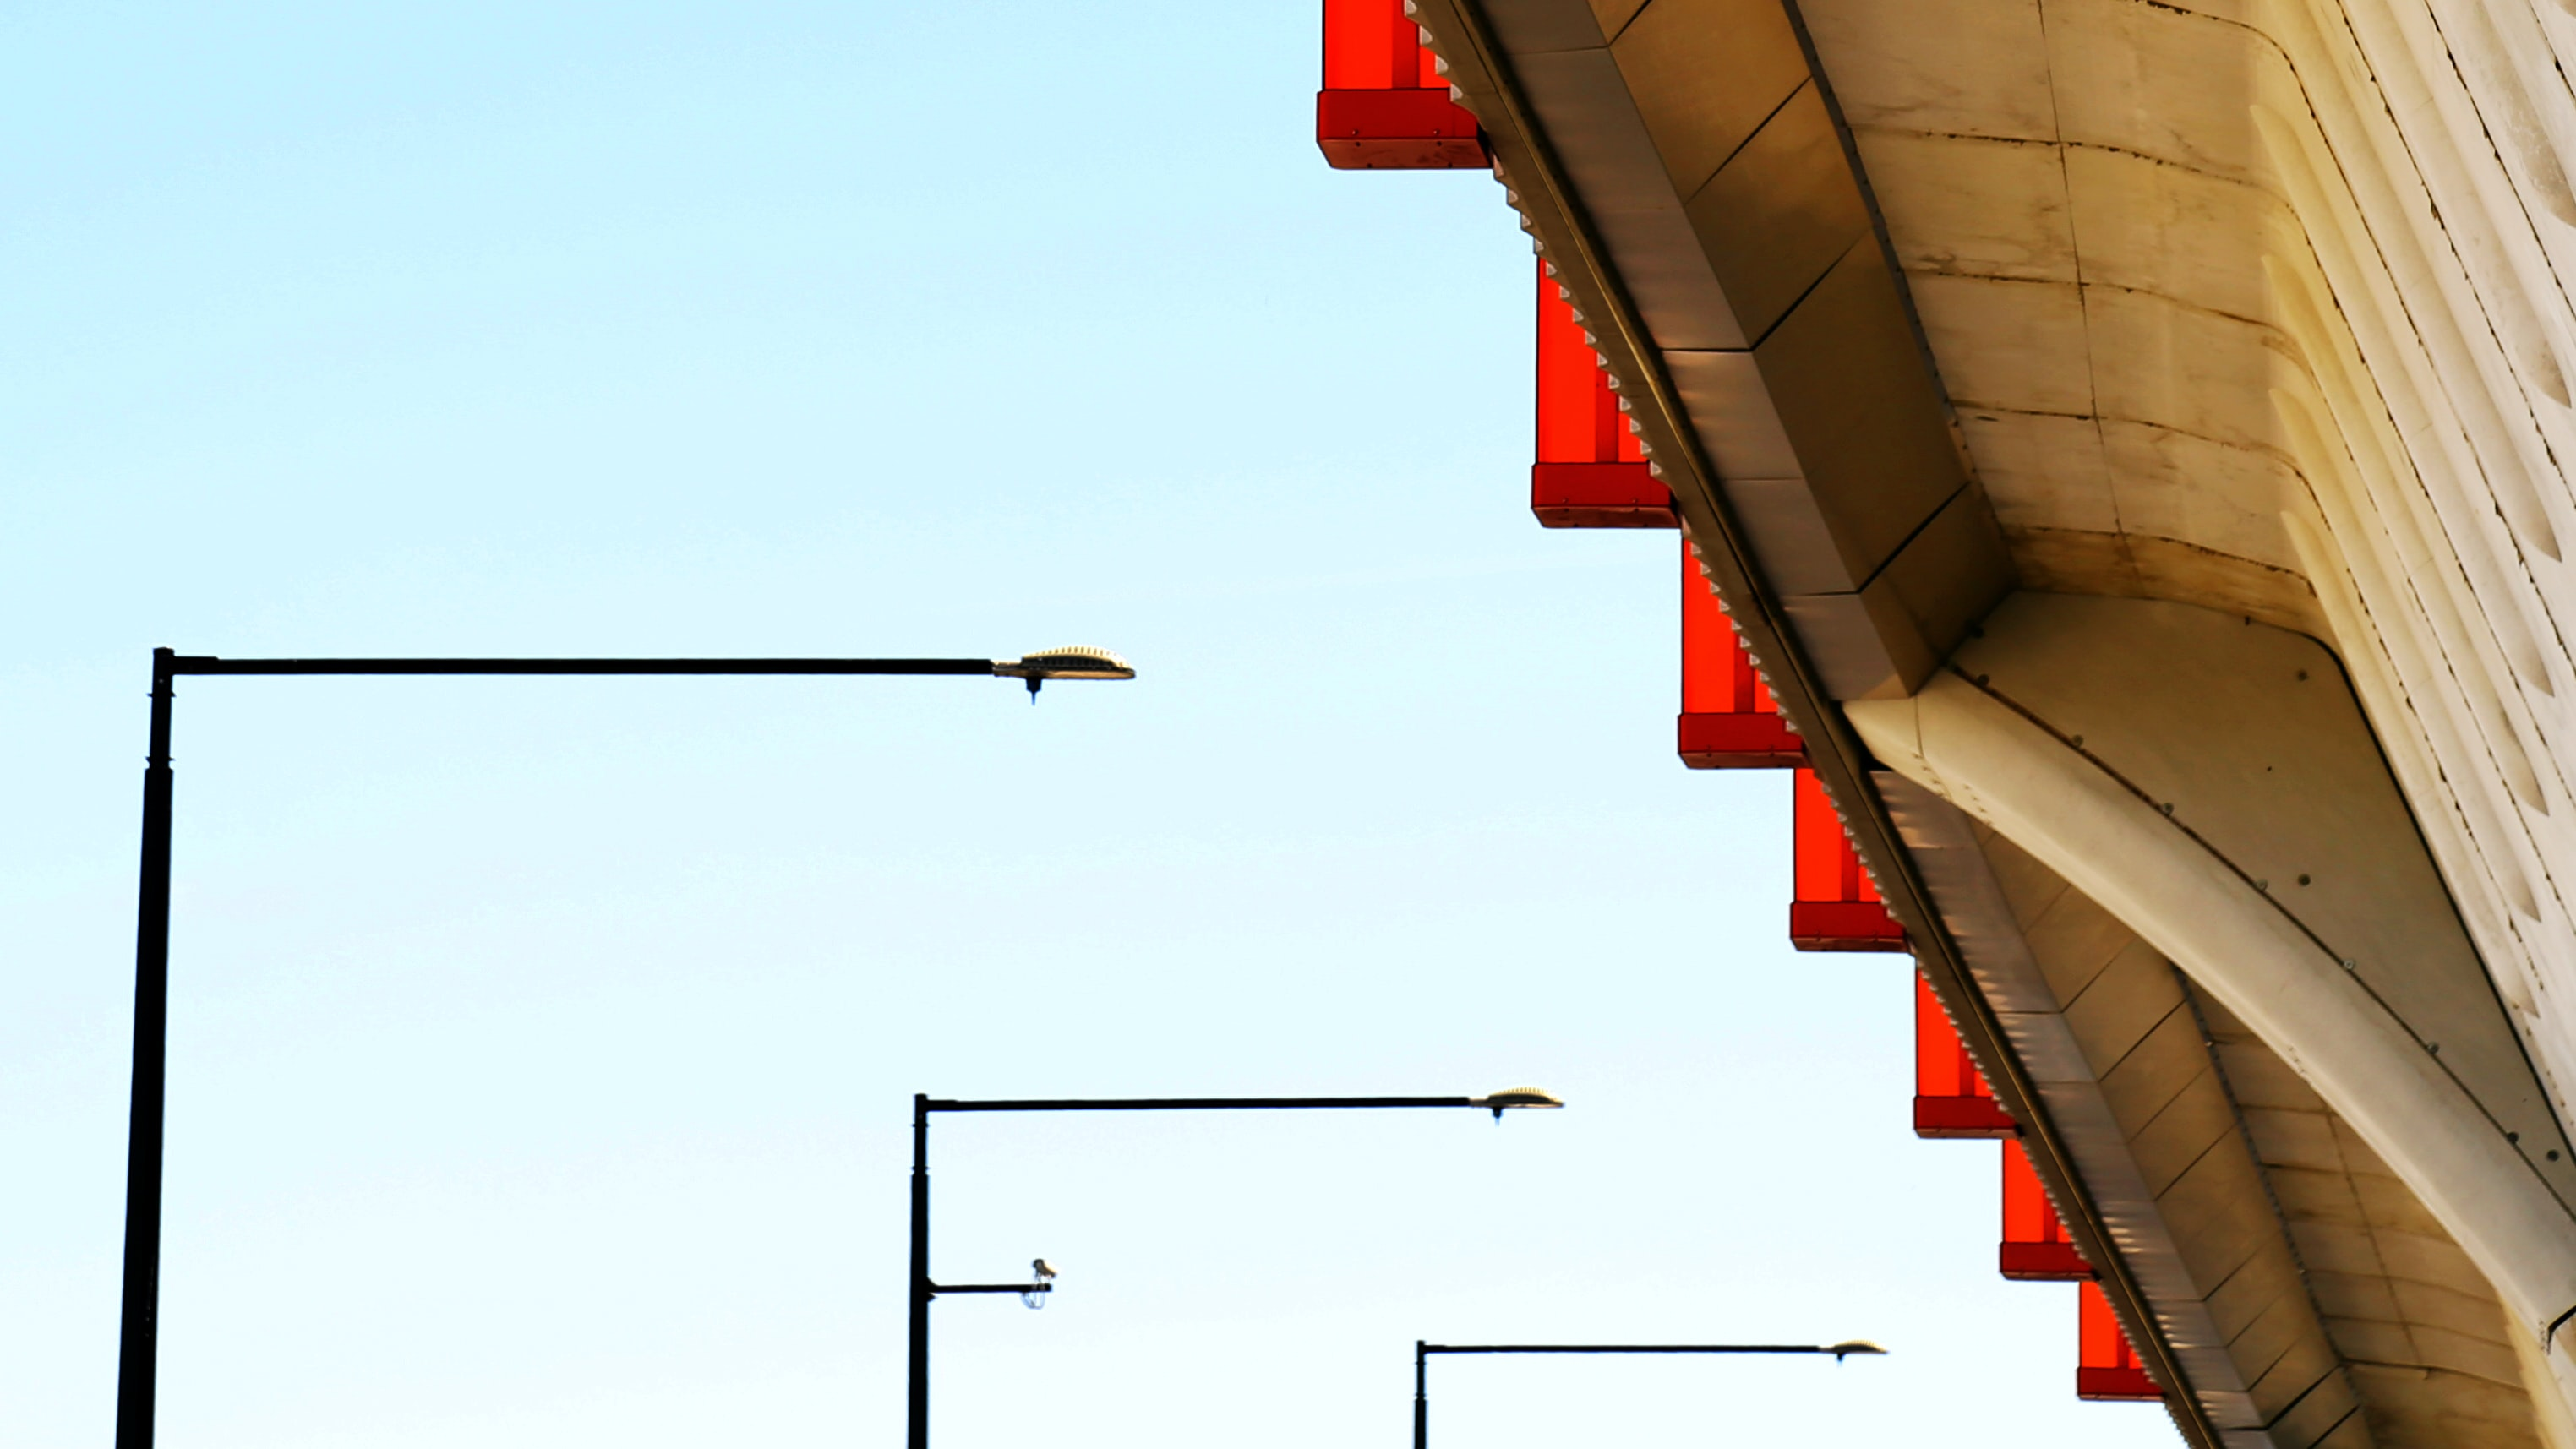 Street Lights and underpass of building form patterns with architecture